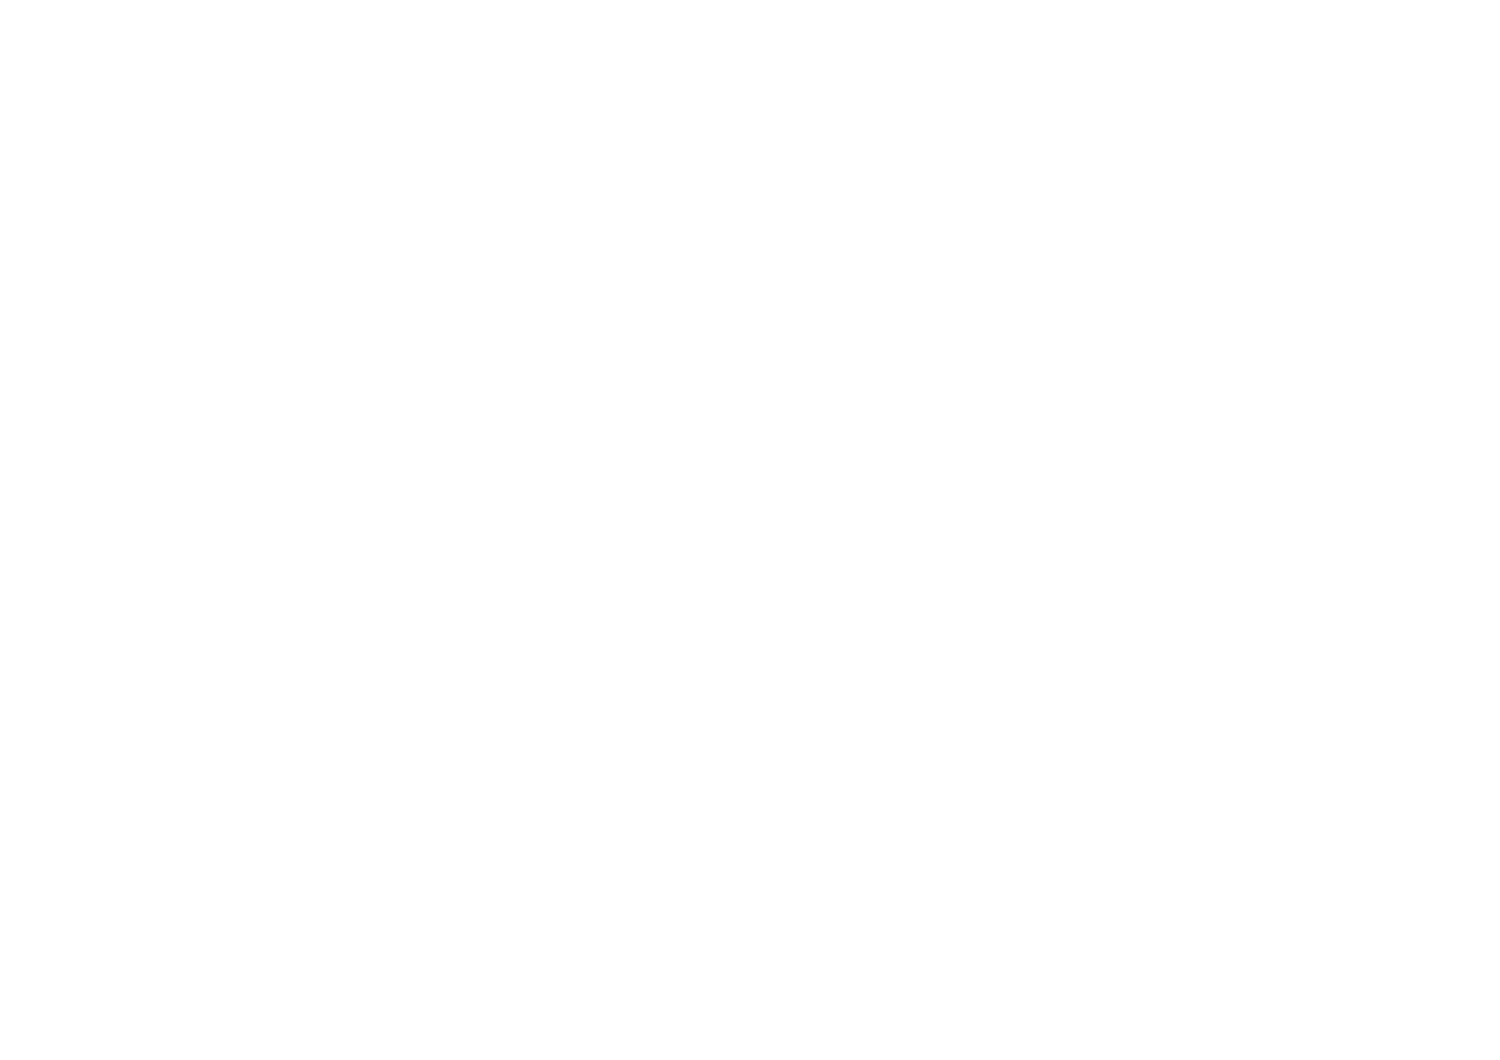 barn swallow farm